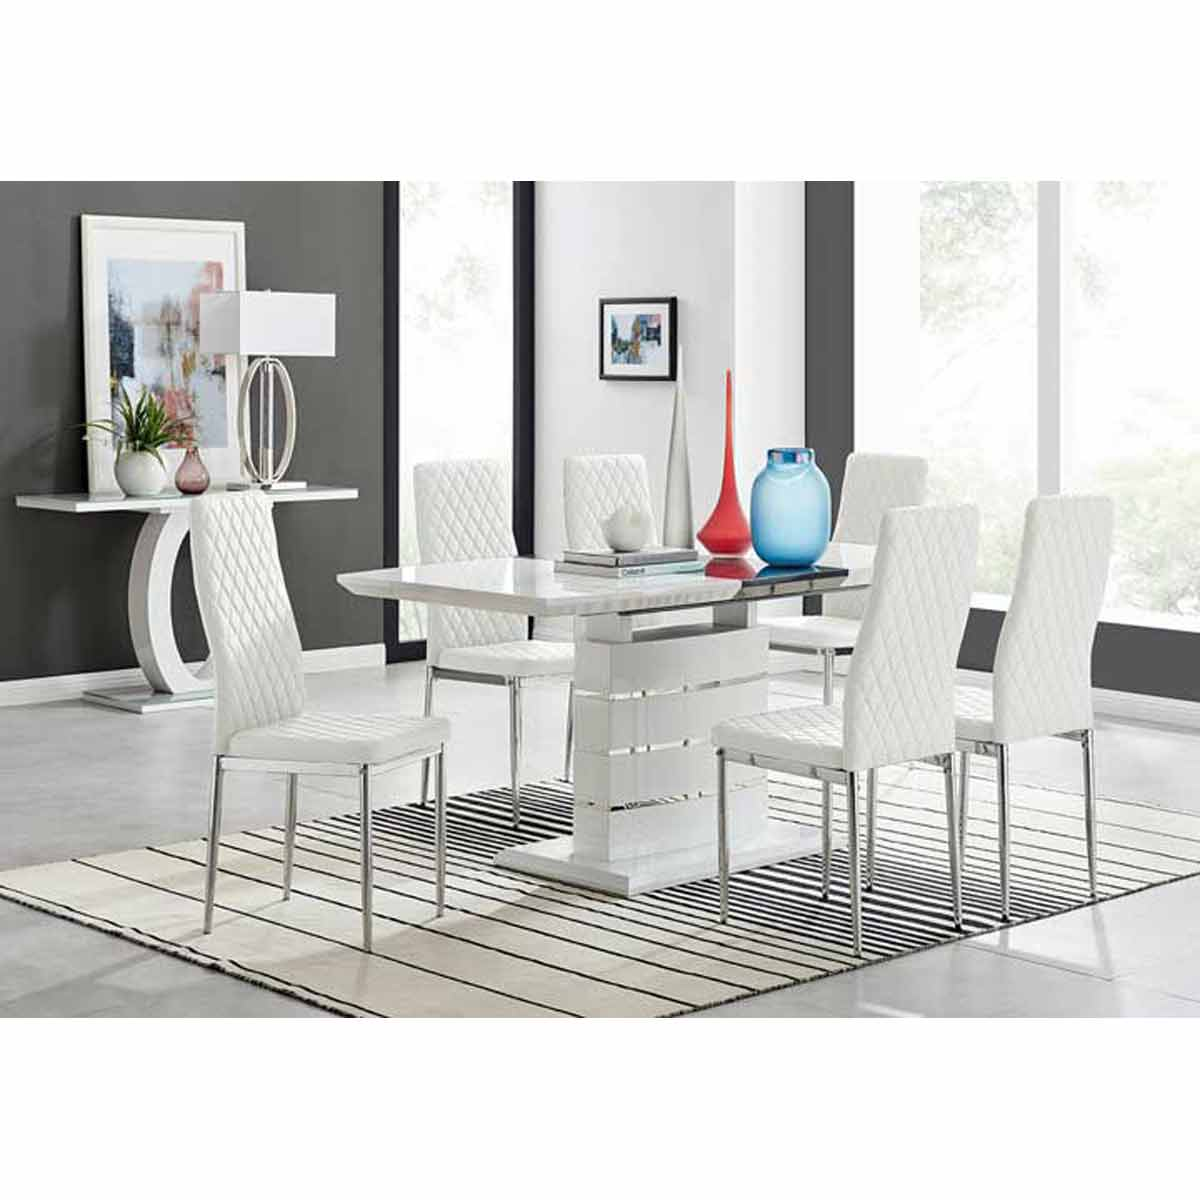 Furniture Box Renato 120cm High Gloss Extending Dining Table and 6 White Milan Chairs